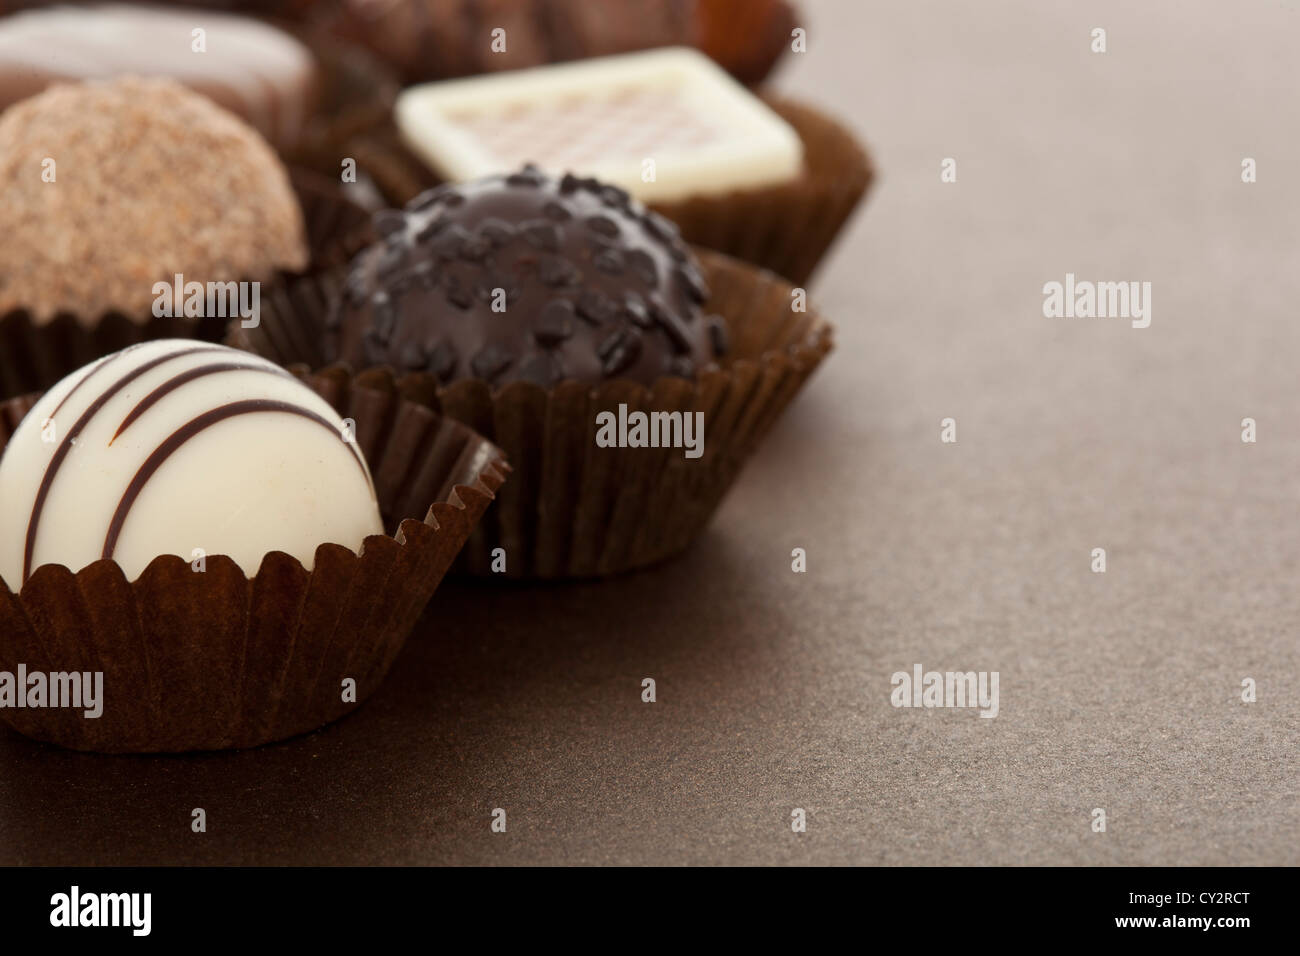 Assorted gourmet chocolate bonbons in paper cups - Stock Image